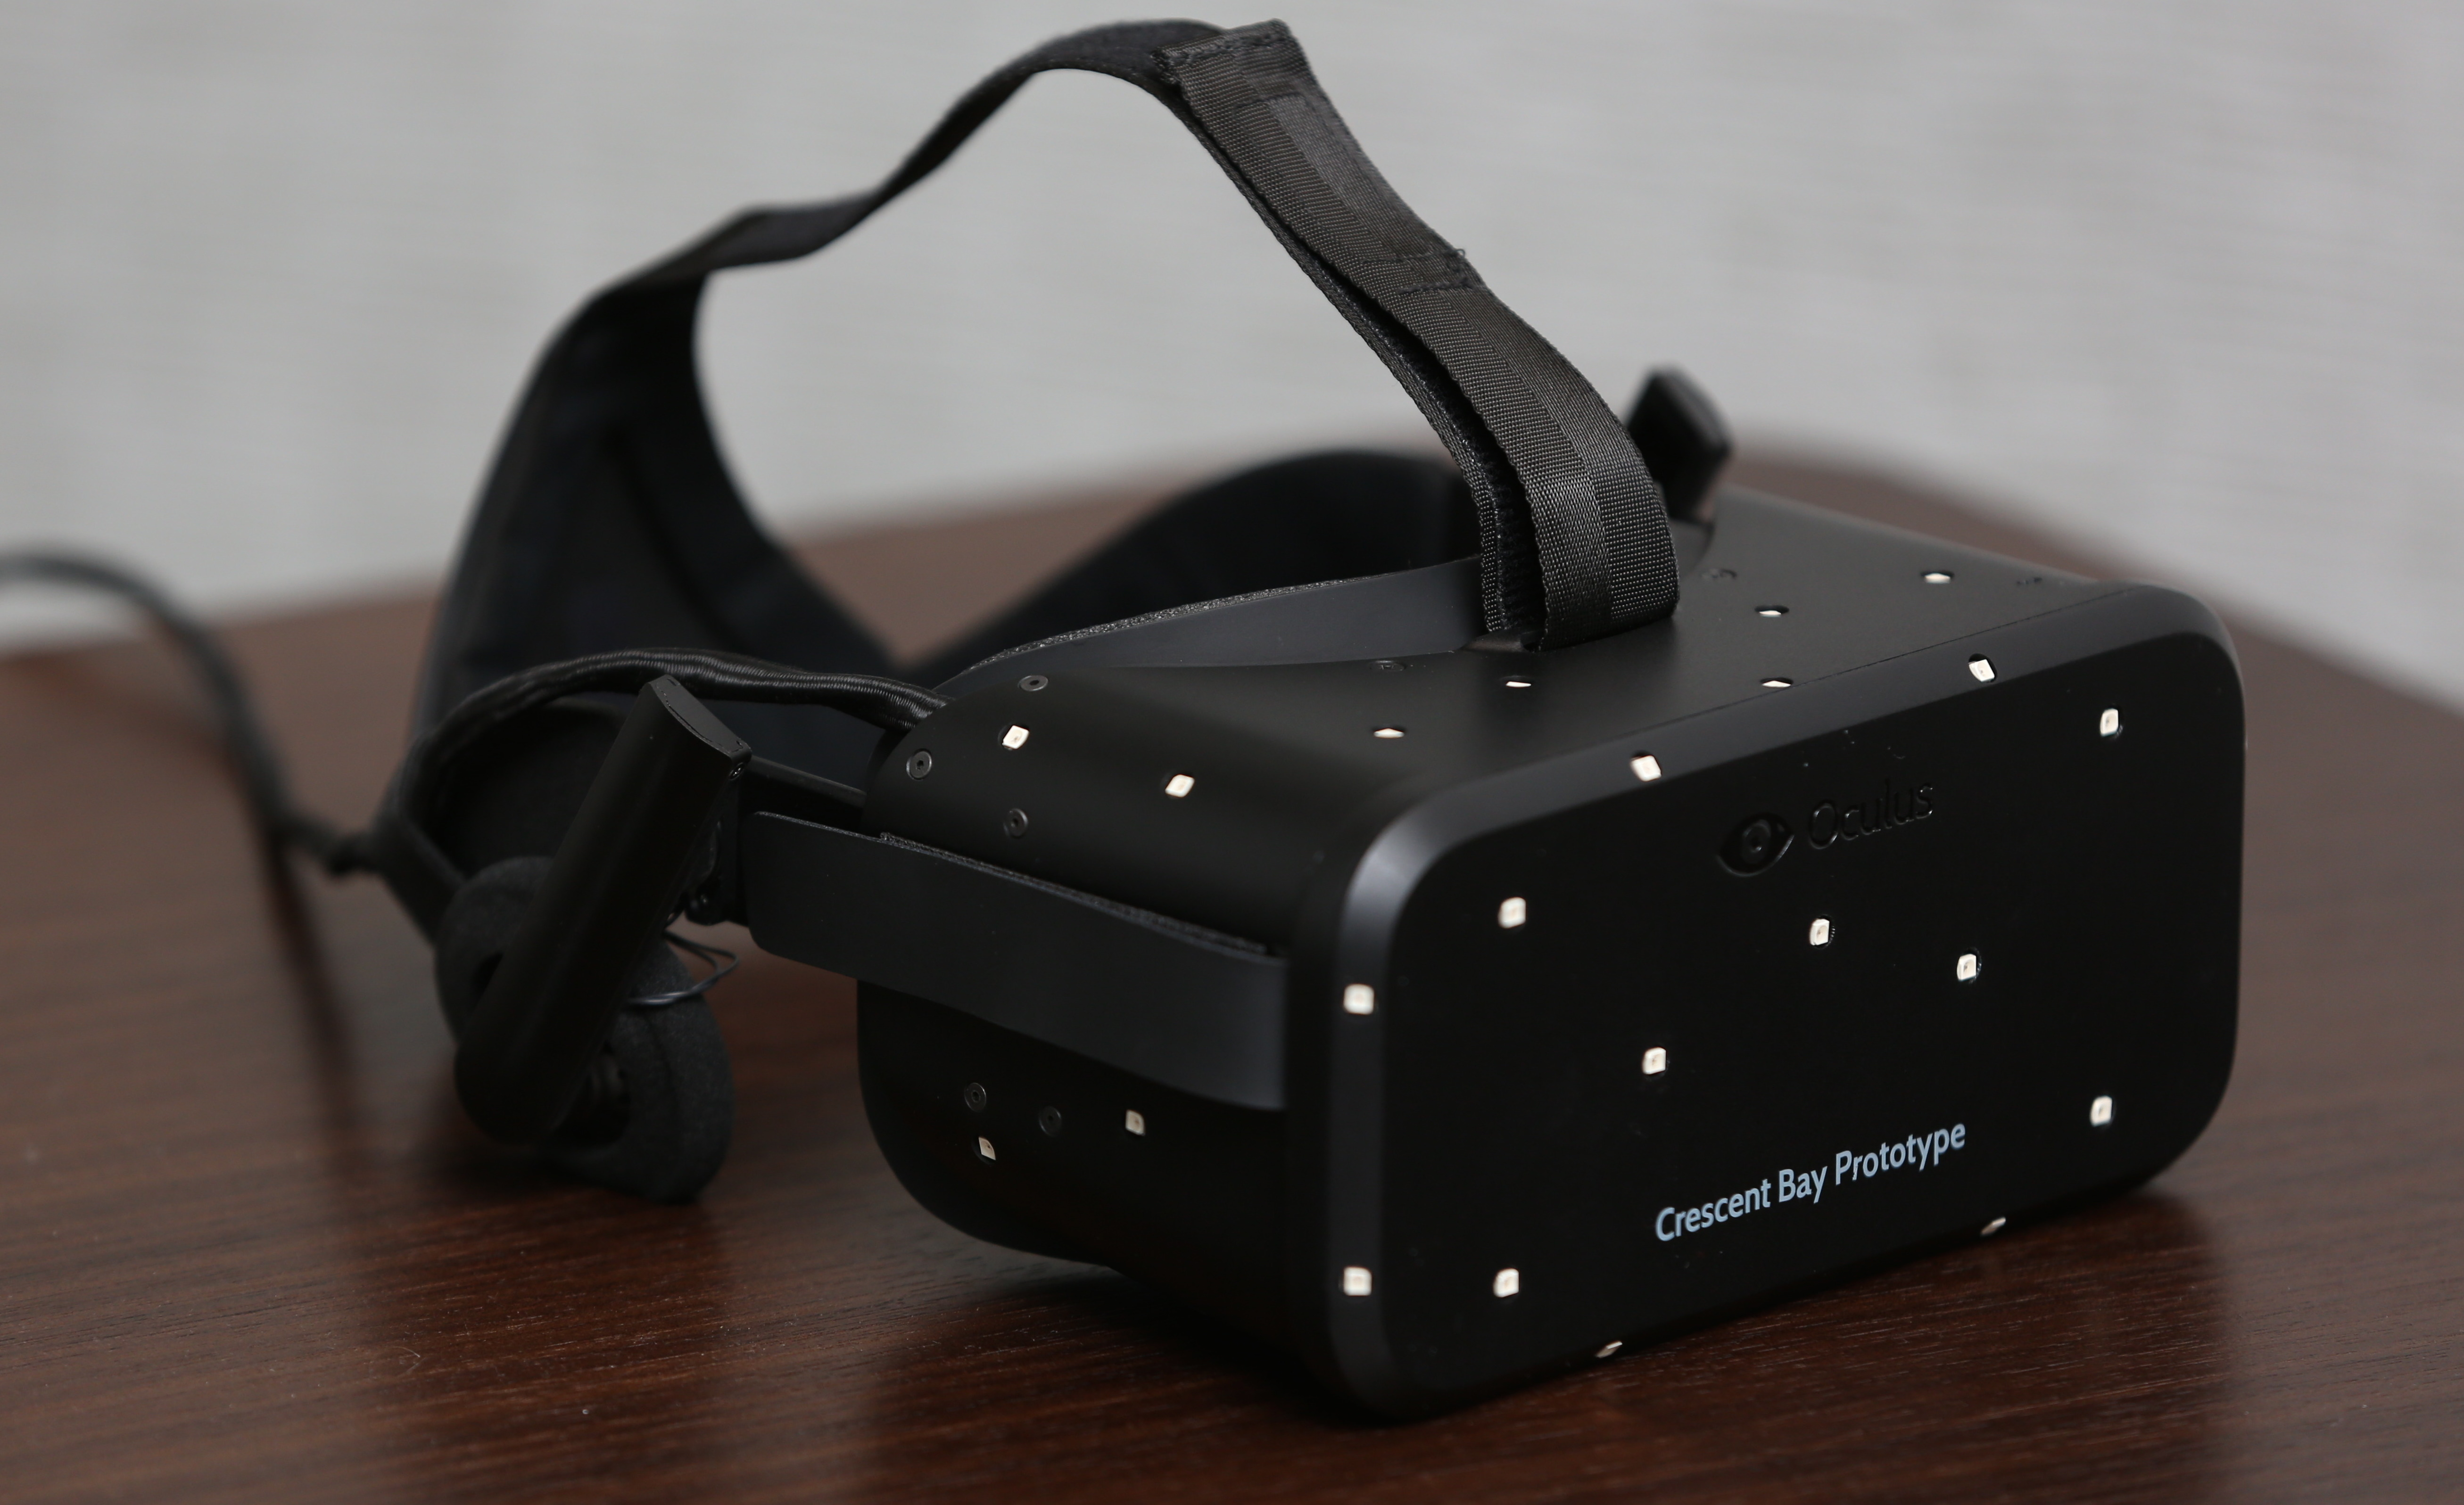 Creator of the Oculus Rift talks